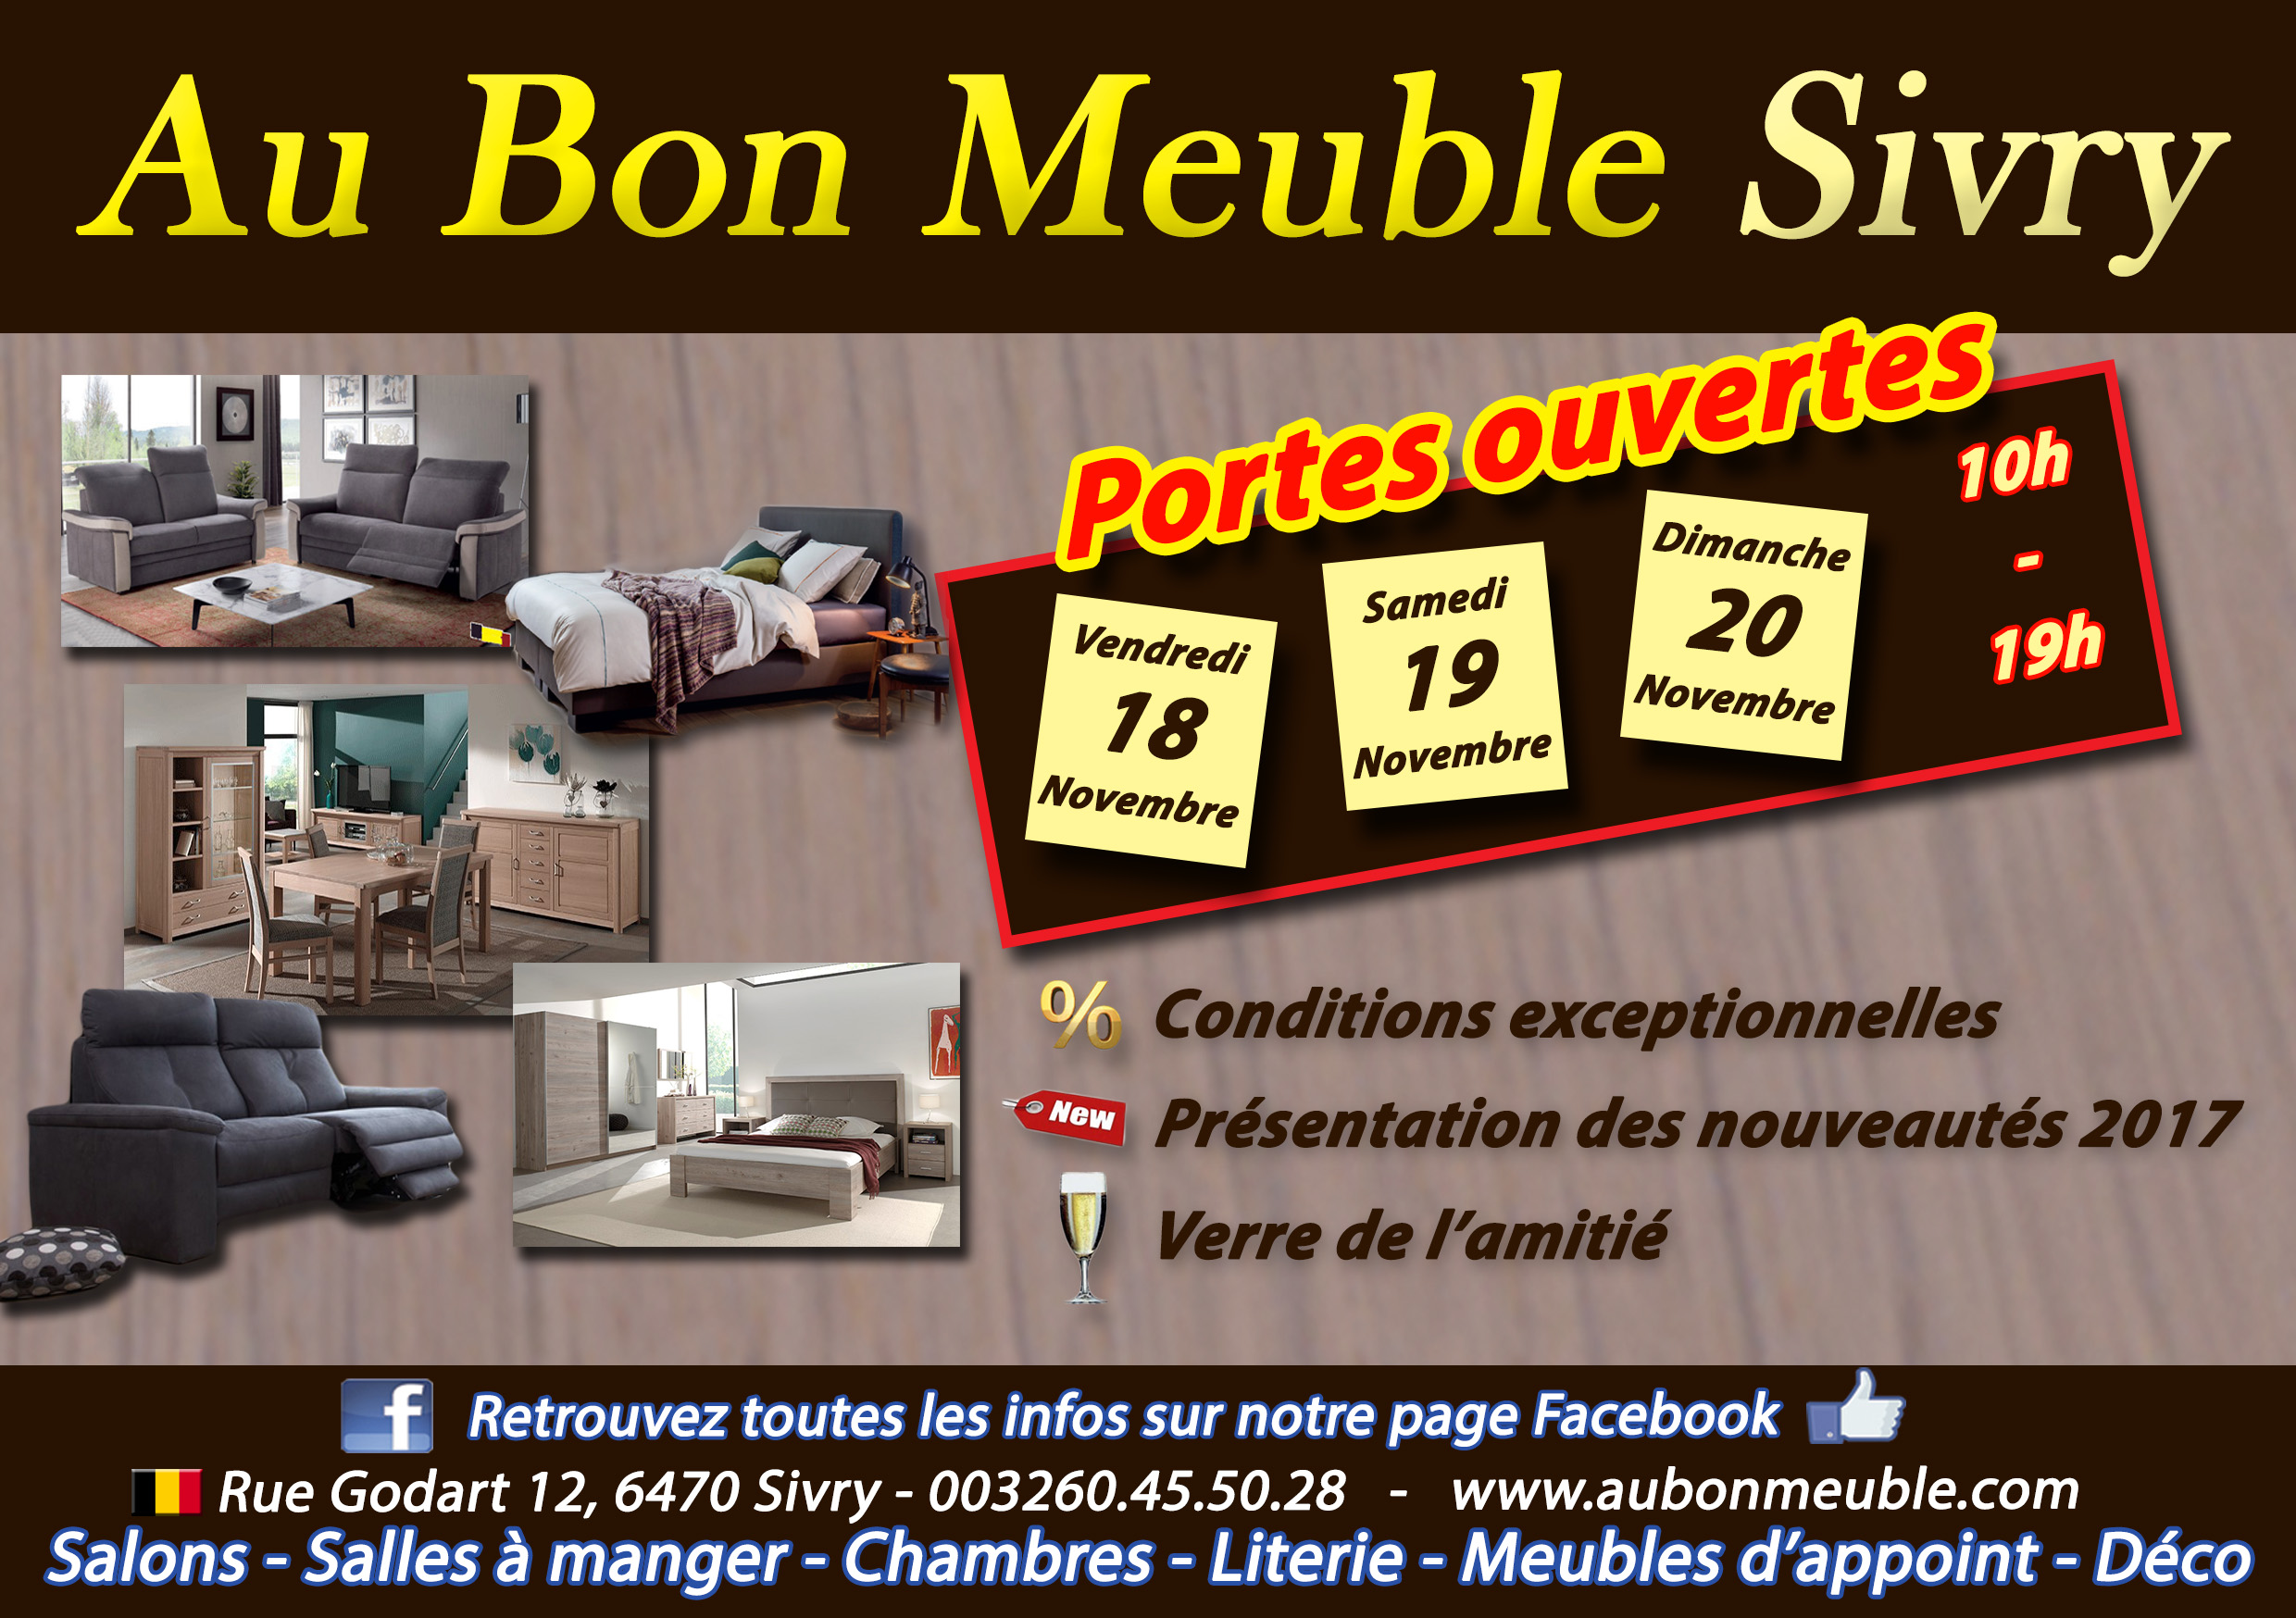 bienvenue au bon meuble sivry. Black Bedroom Furniture Sets. Home Design Ideas